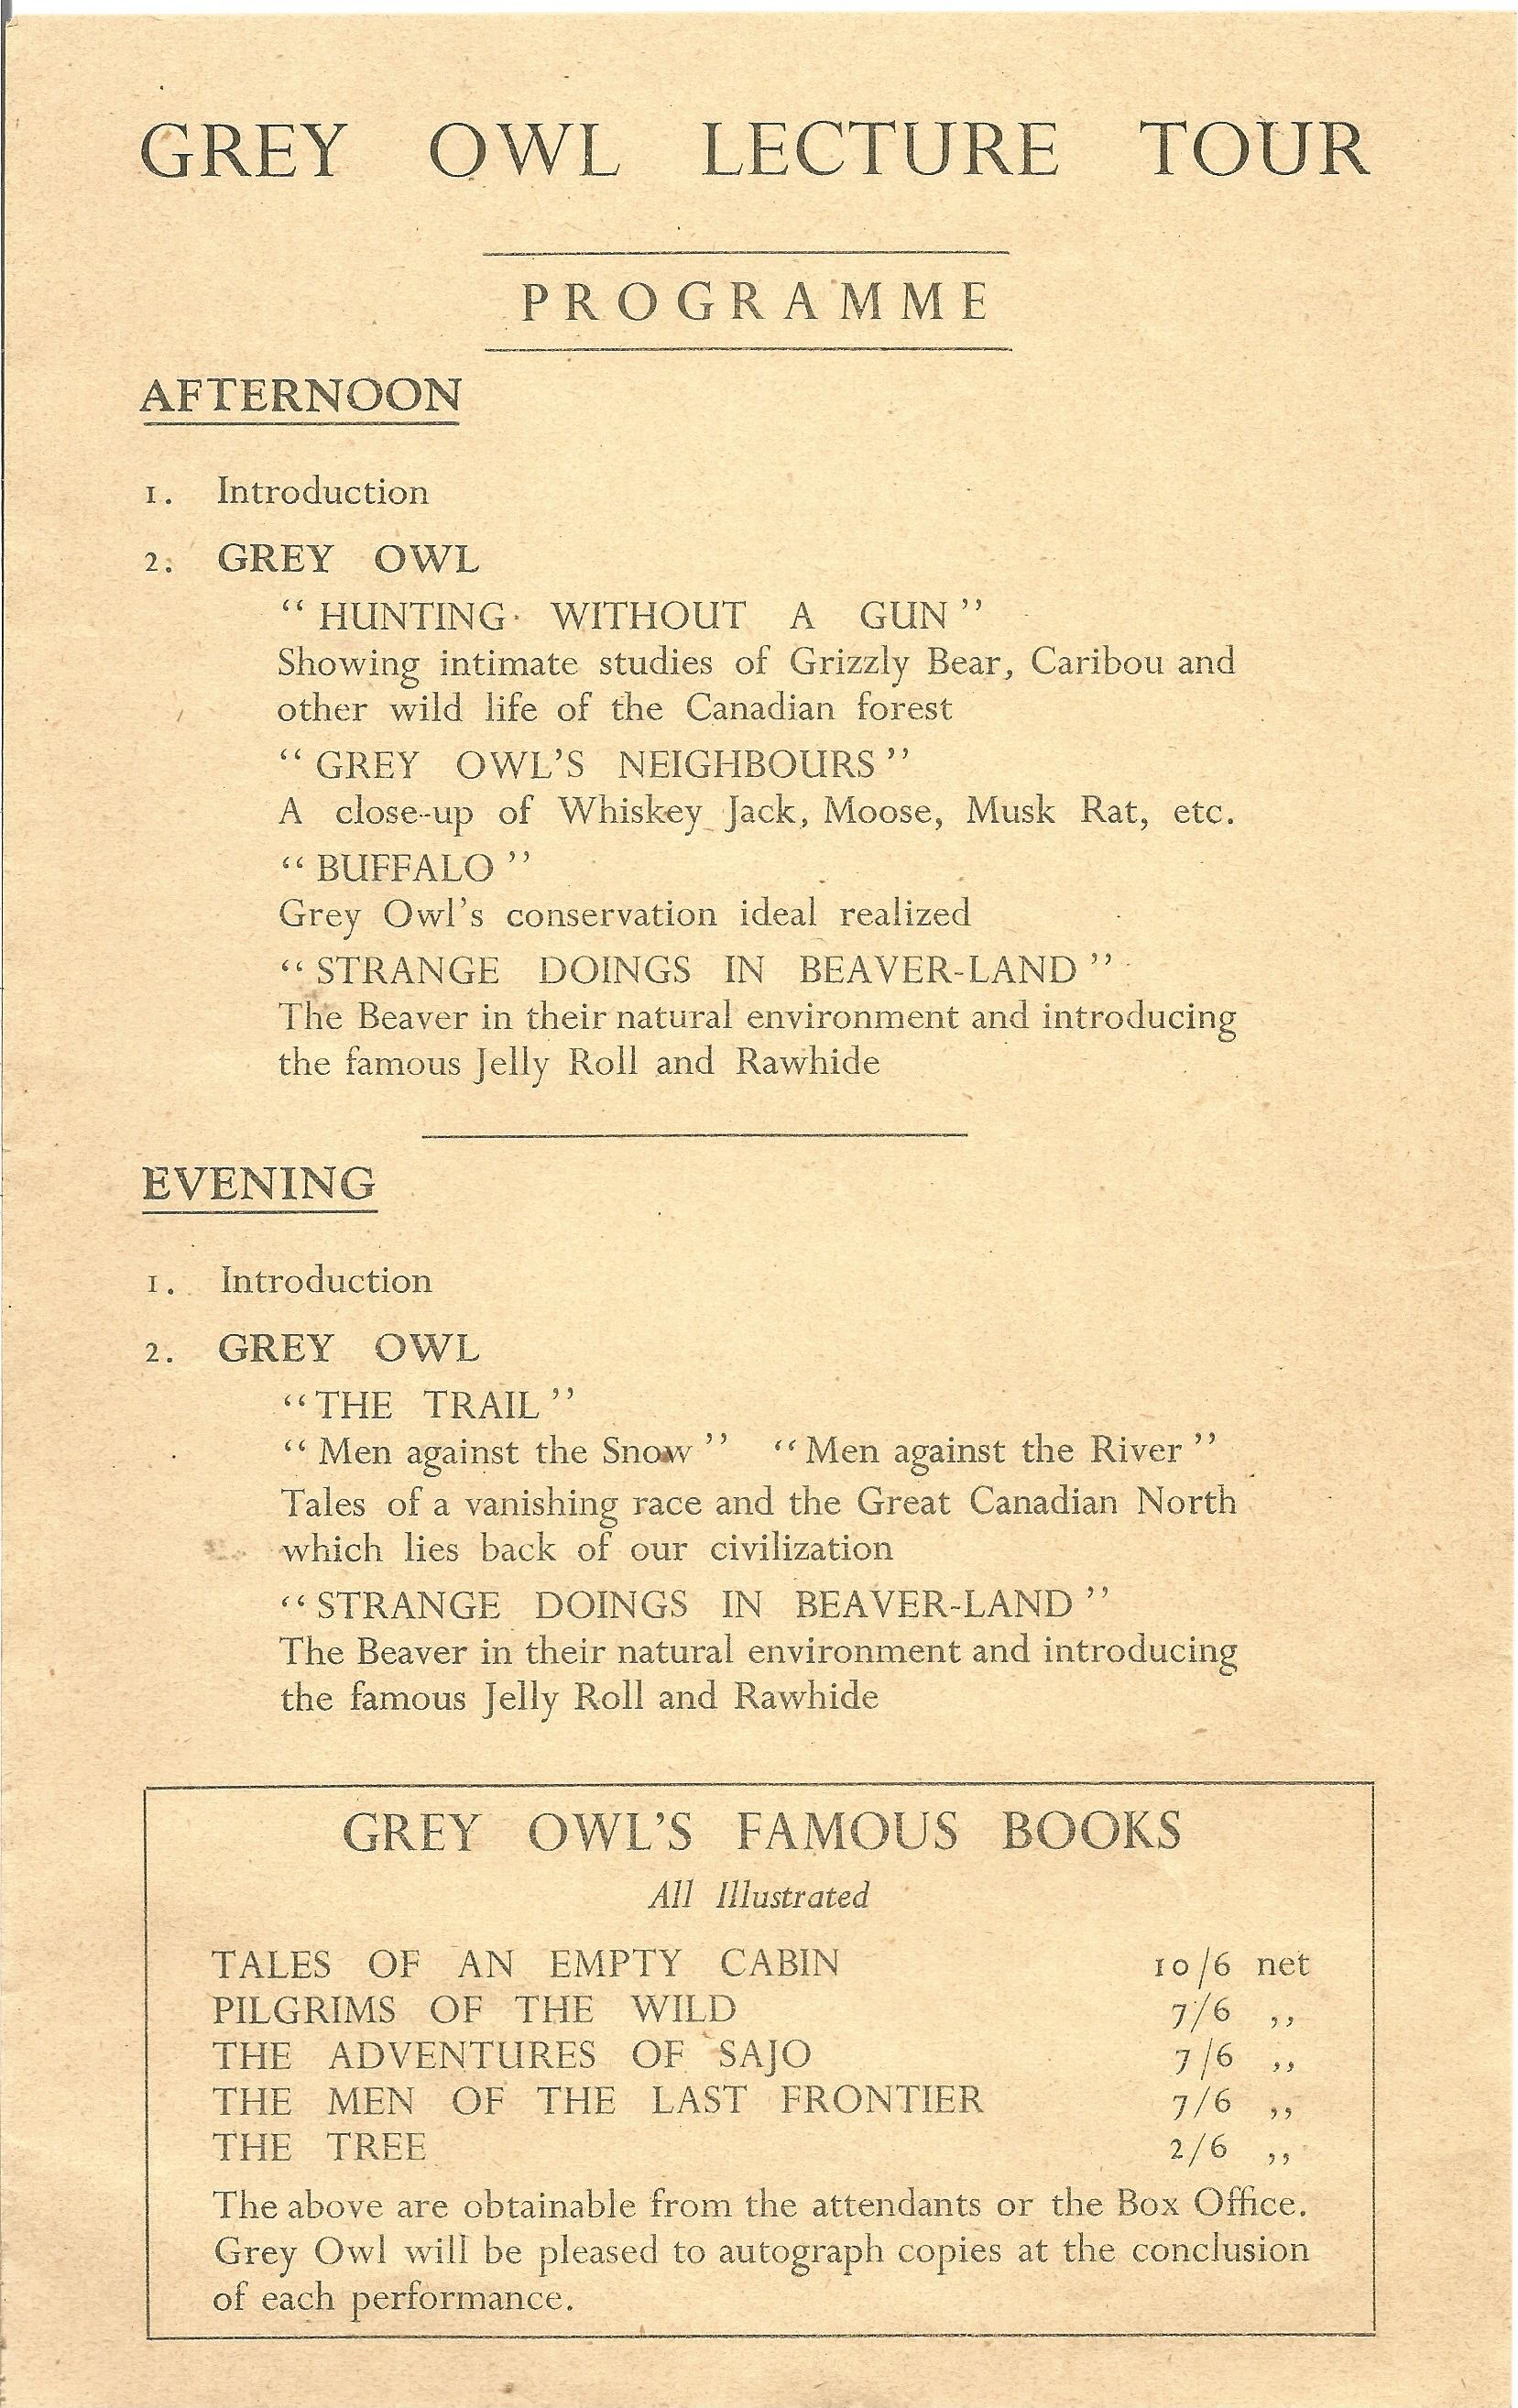 Hardback Book The Tree by Grey Owl (Wa Sha Quon Asin) 1937 First Edition published by Lovat - Image 6 of 6